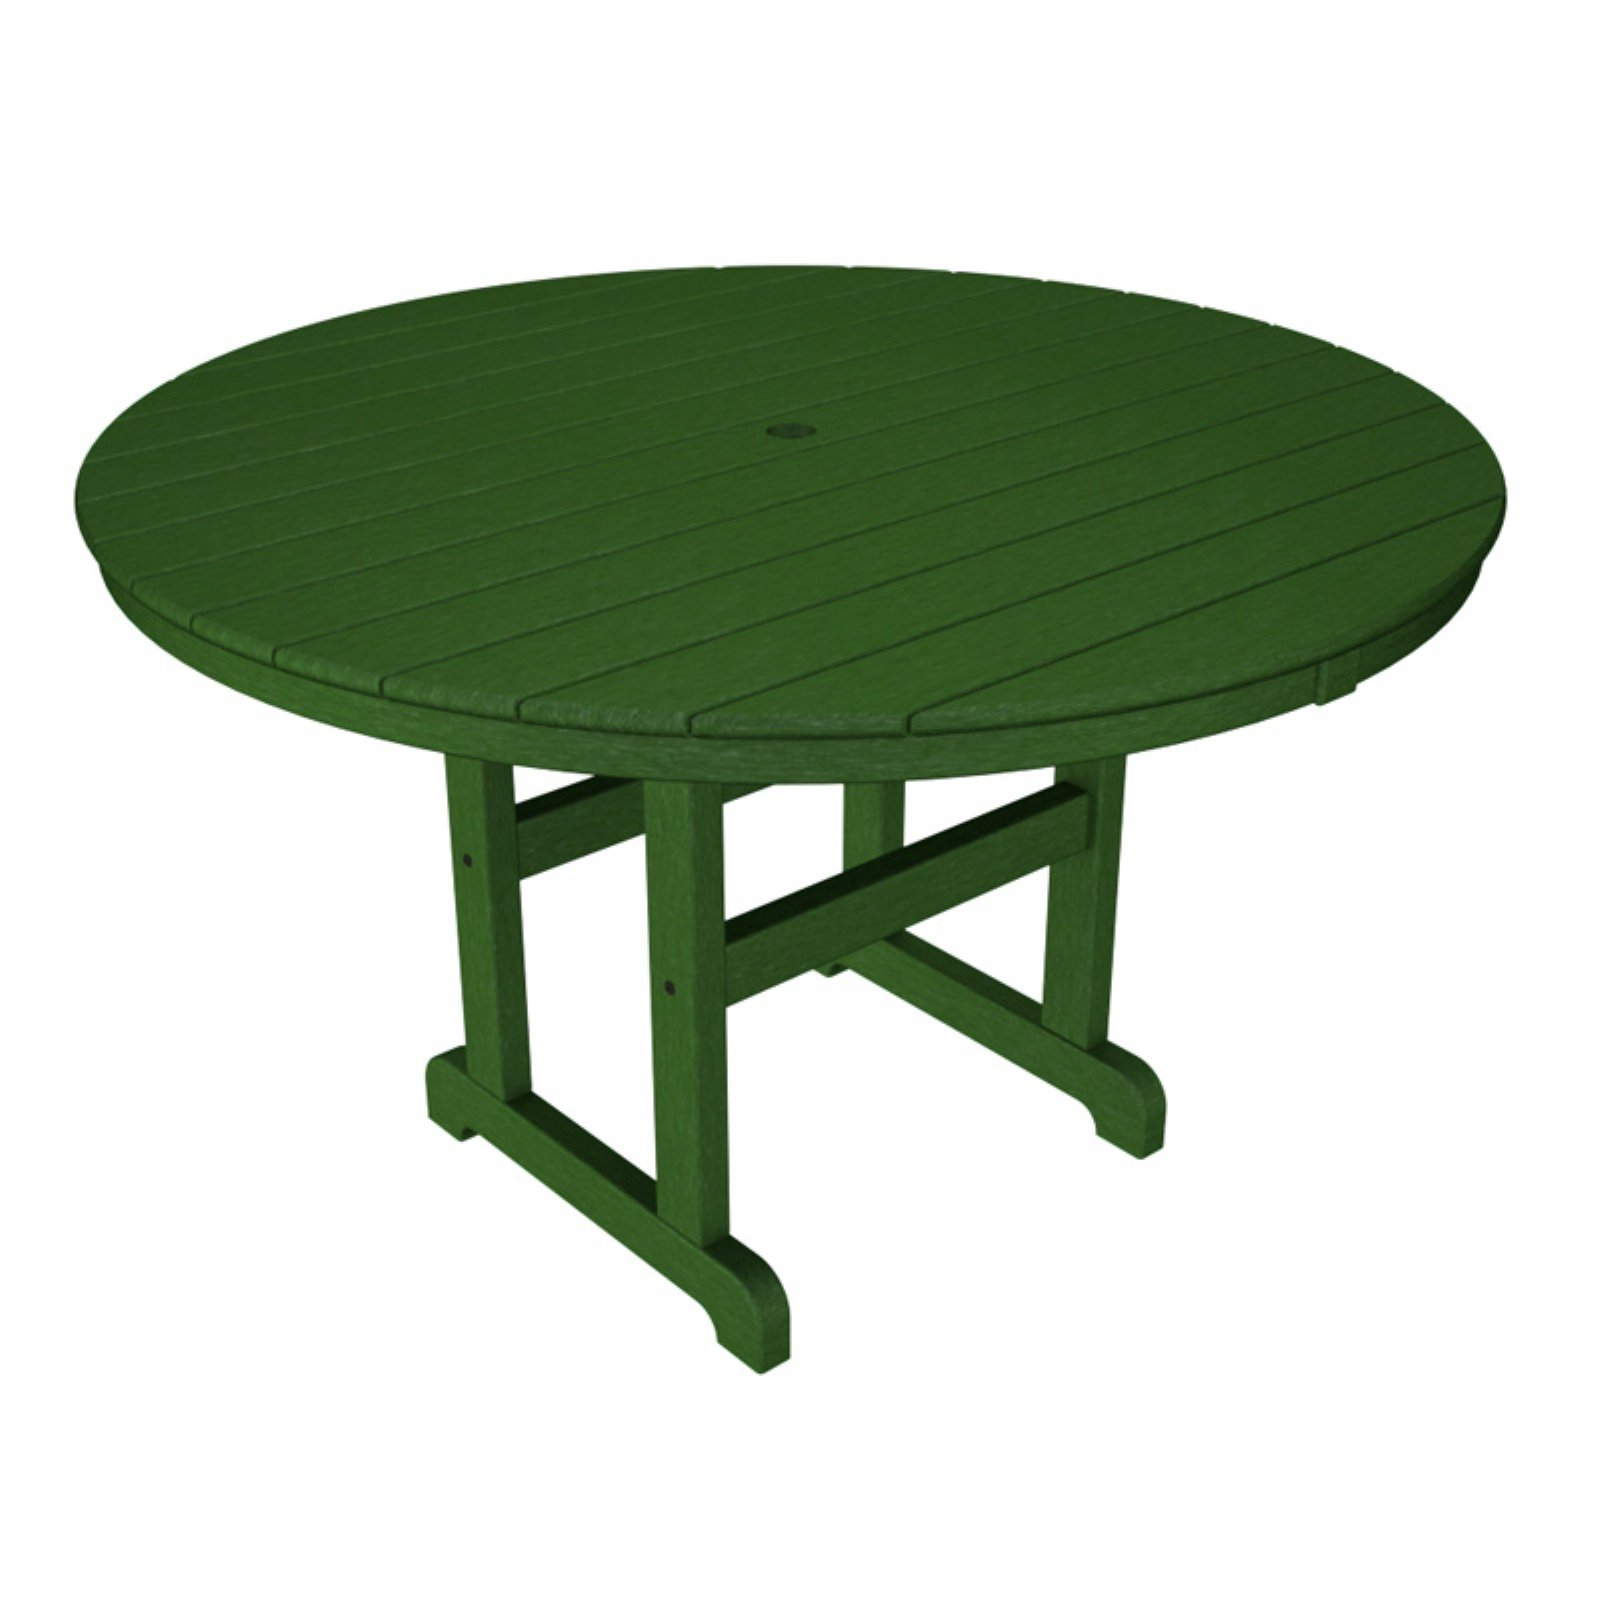 POLYWOOD® Recycled Plastic 48 in. Round Dining Table